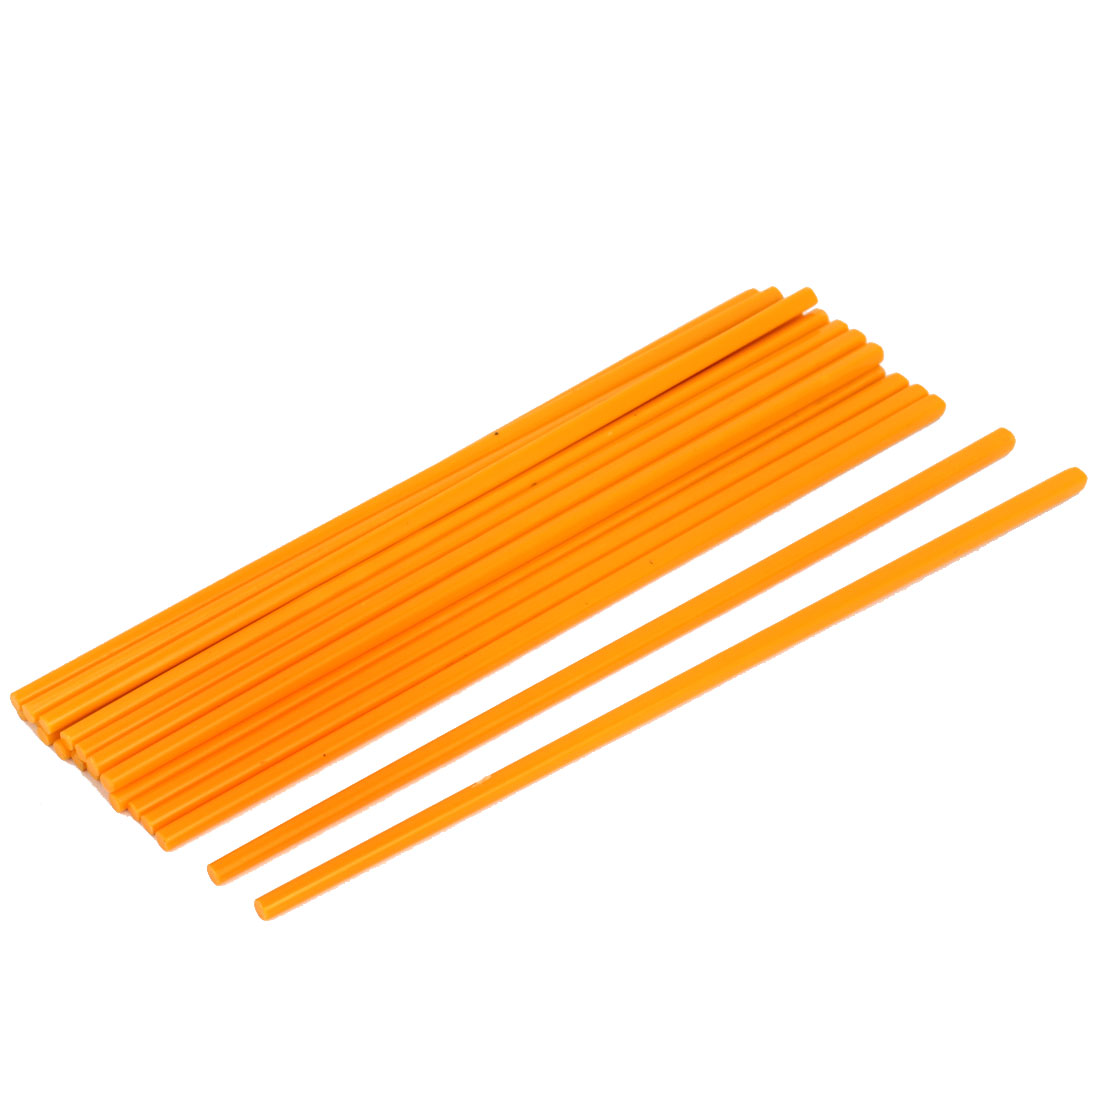 10 Pairs Plastic Chinese Japanese Tableware Dinner Chopsticks Yellow